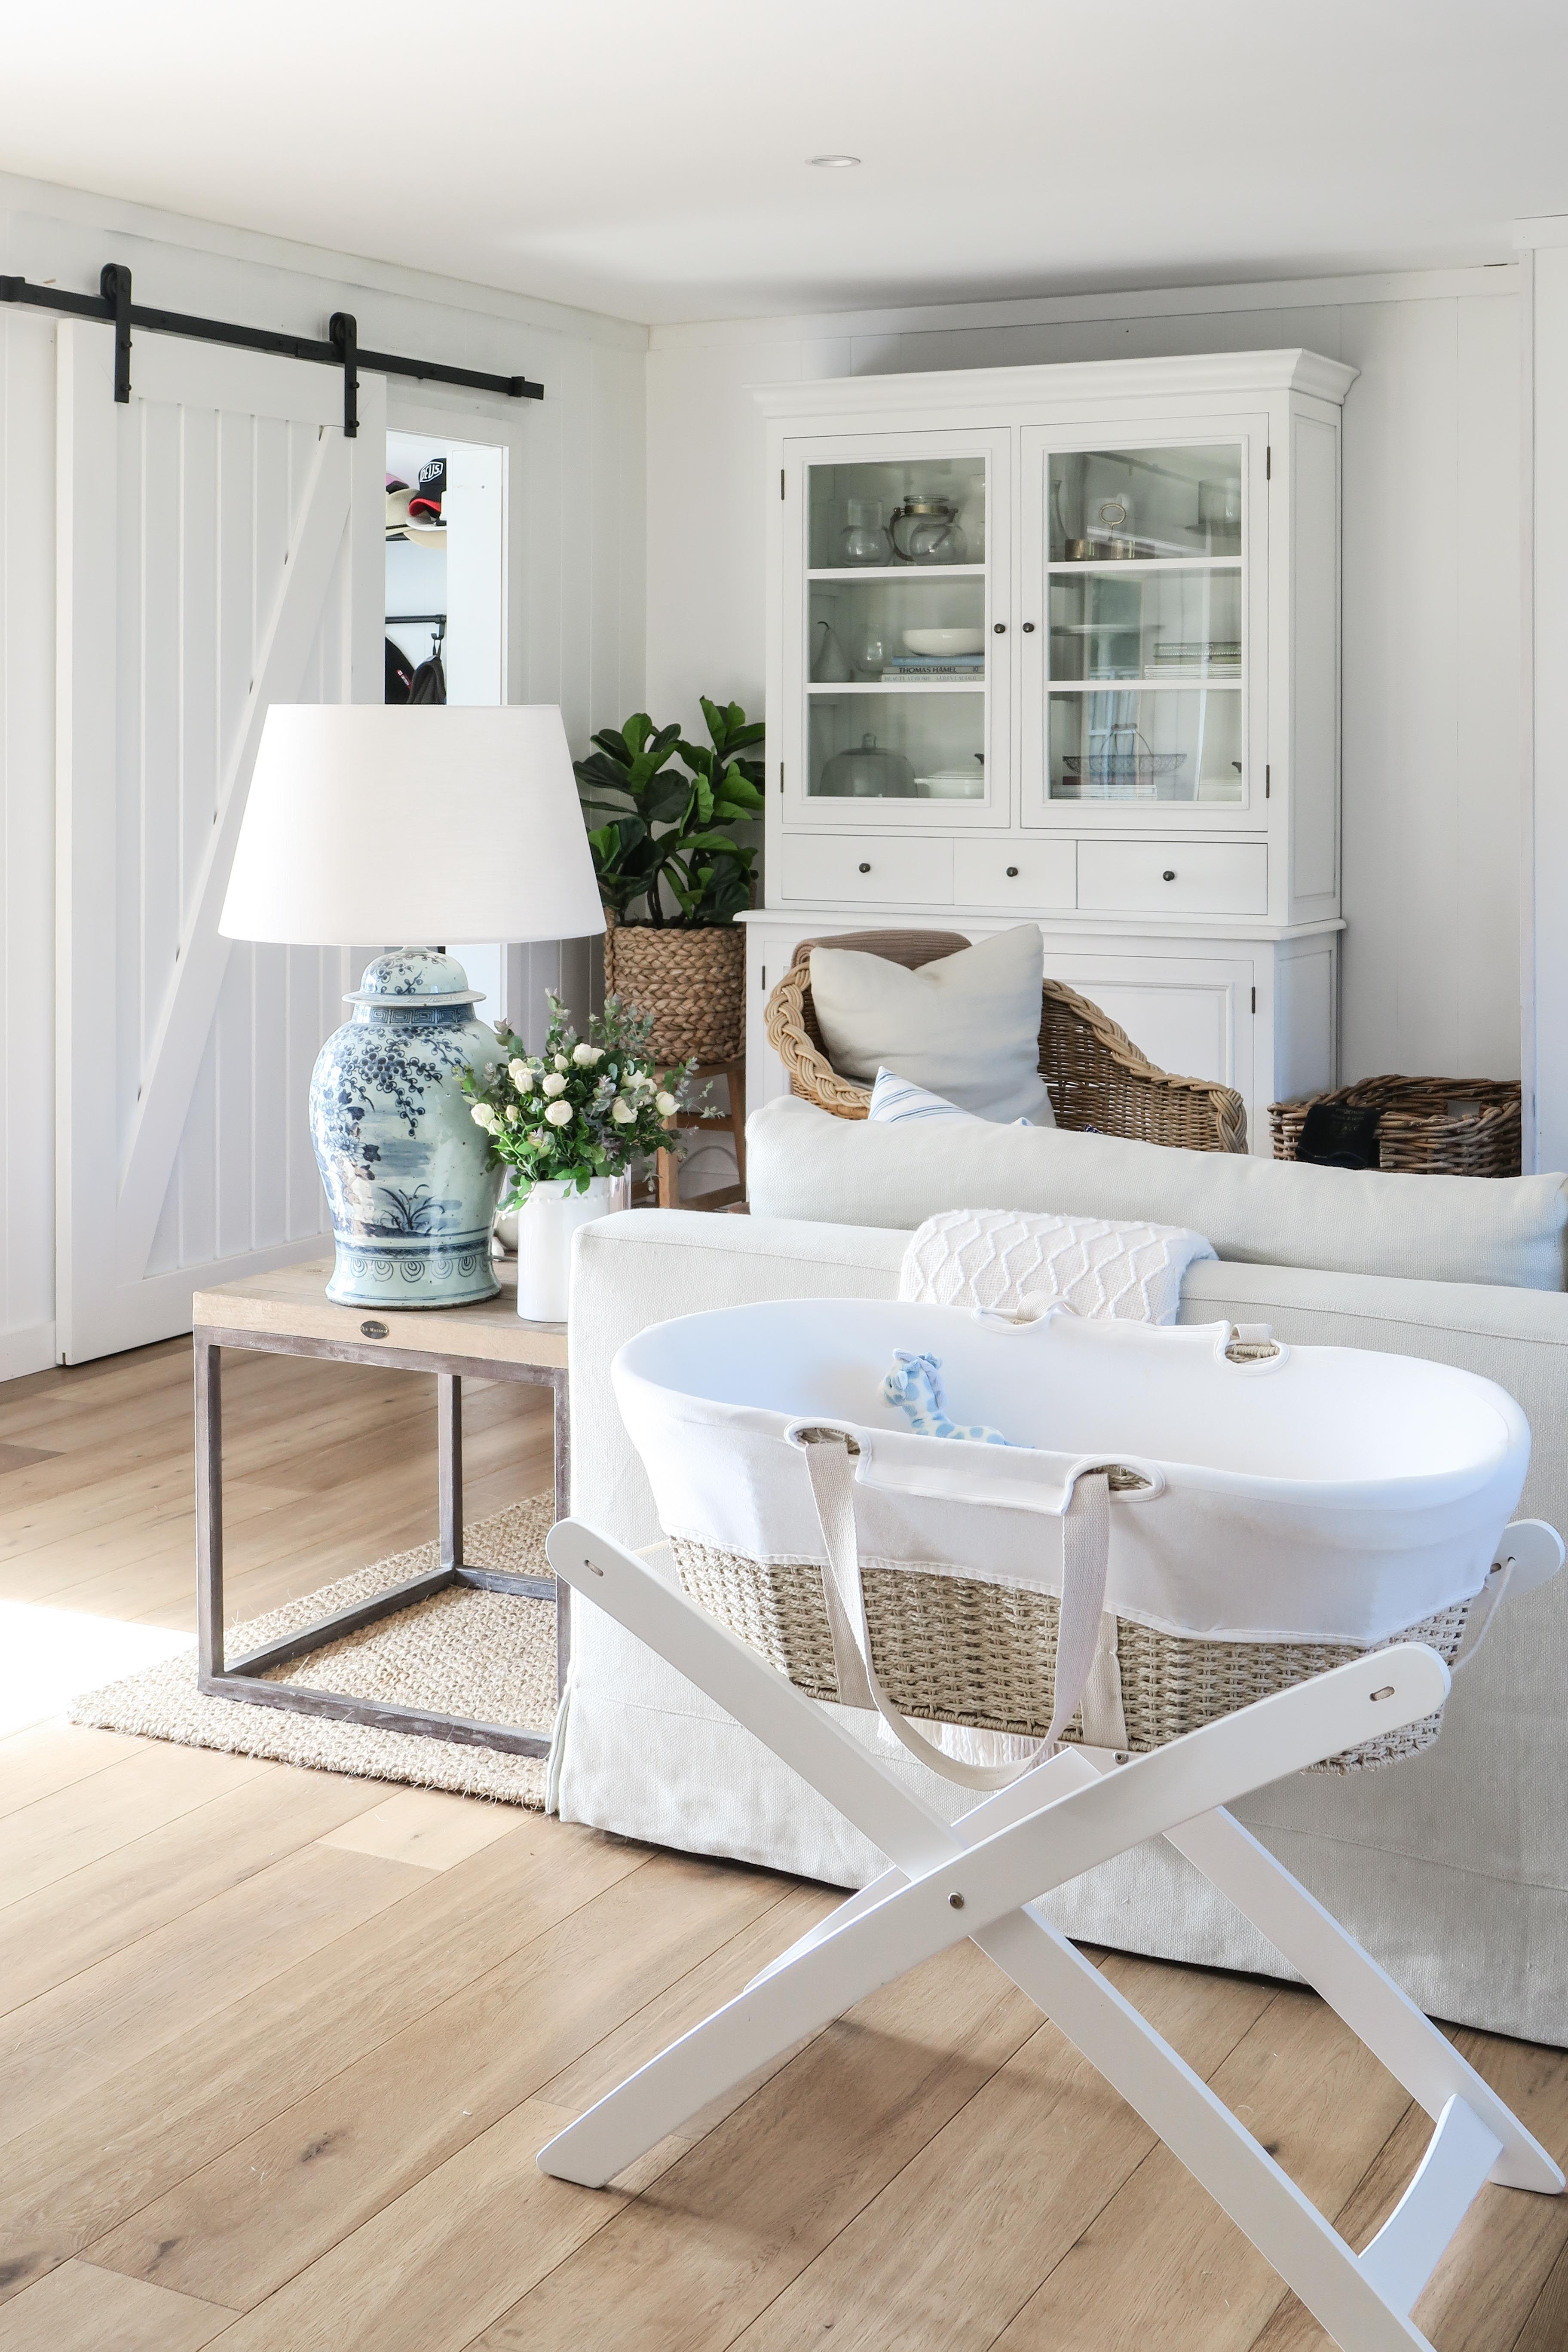 cottonwood-interiors-baby-moses-basket